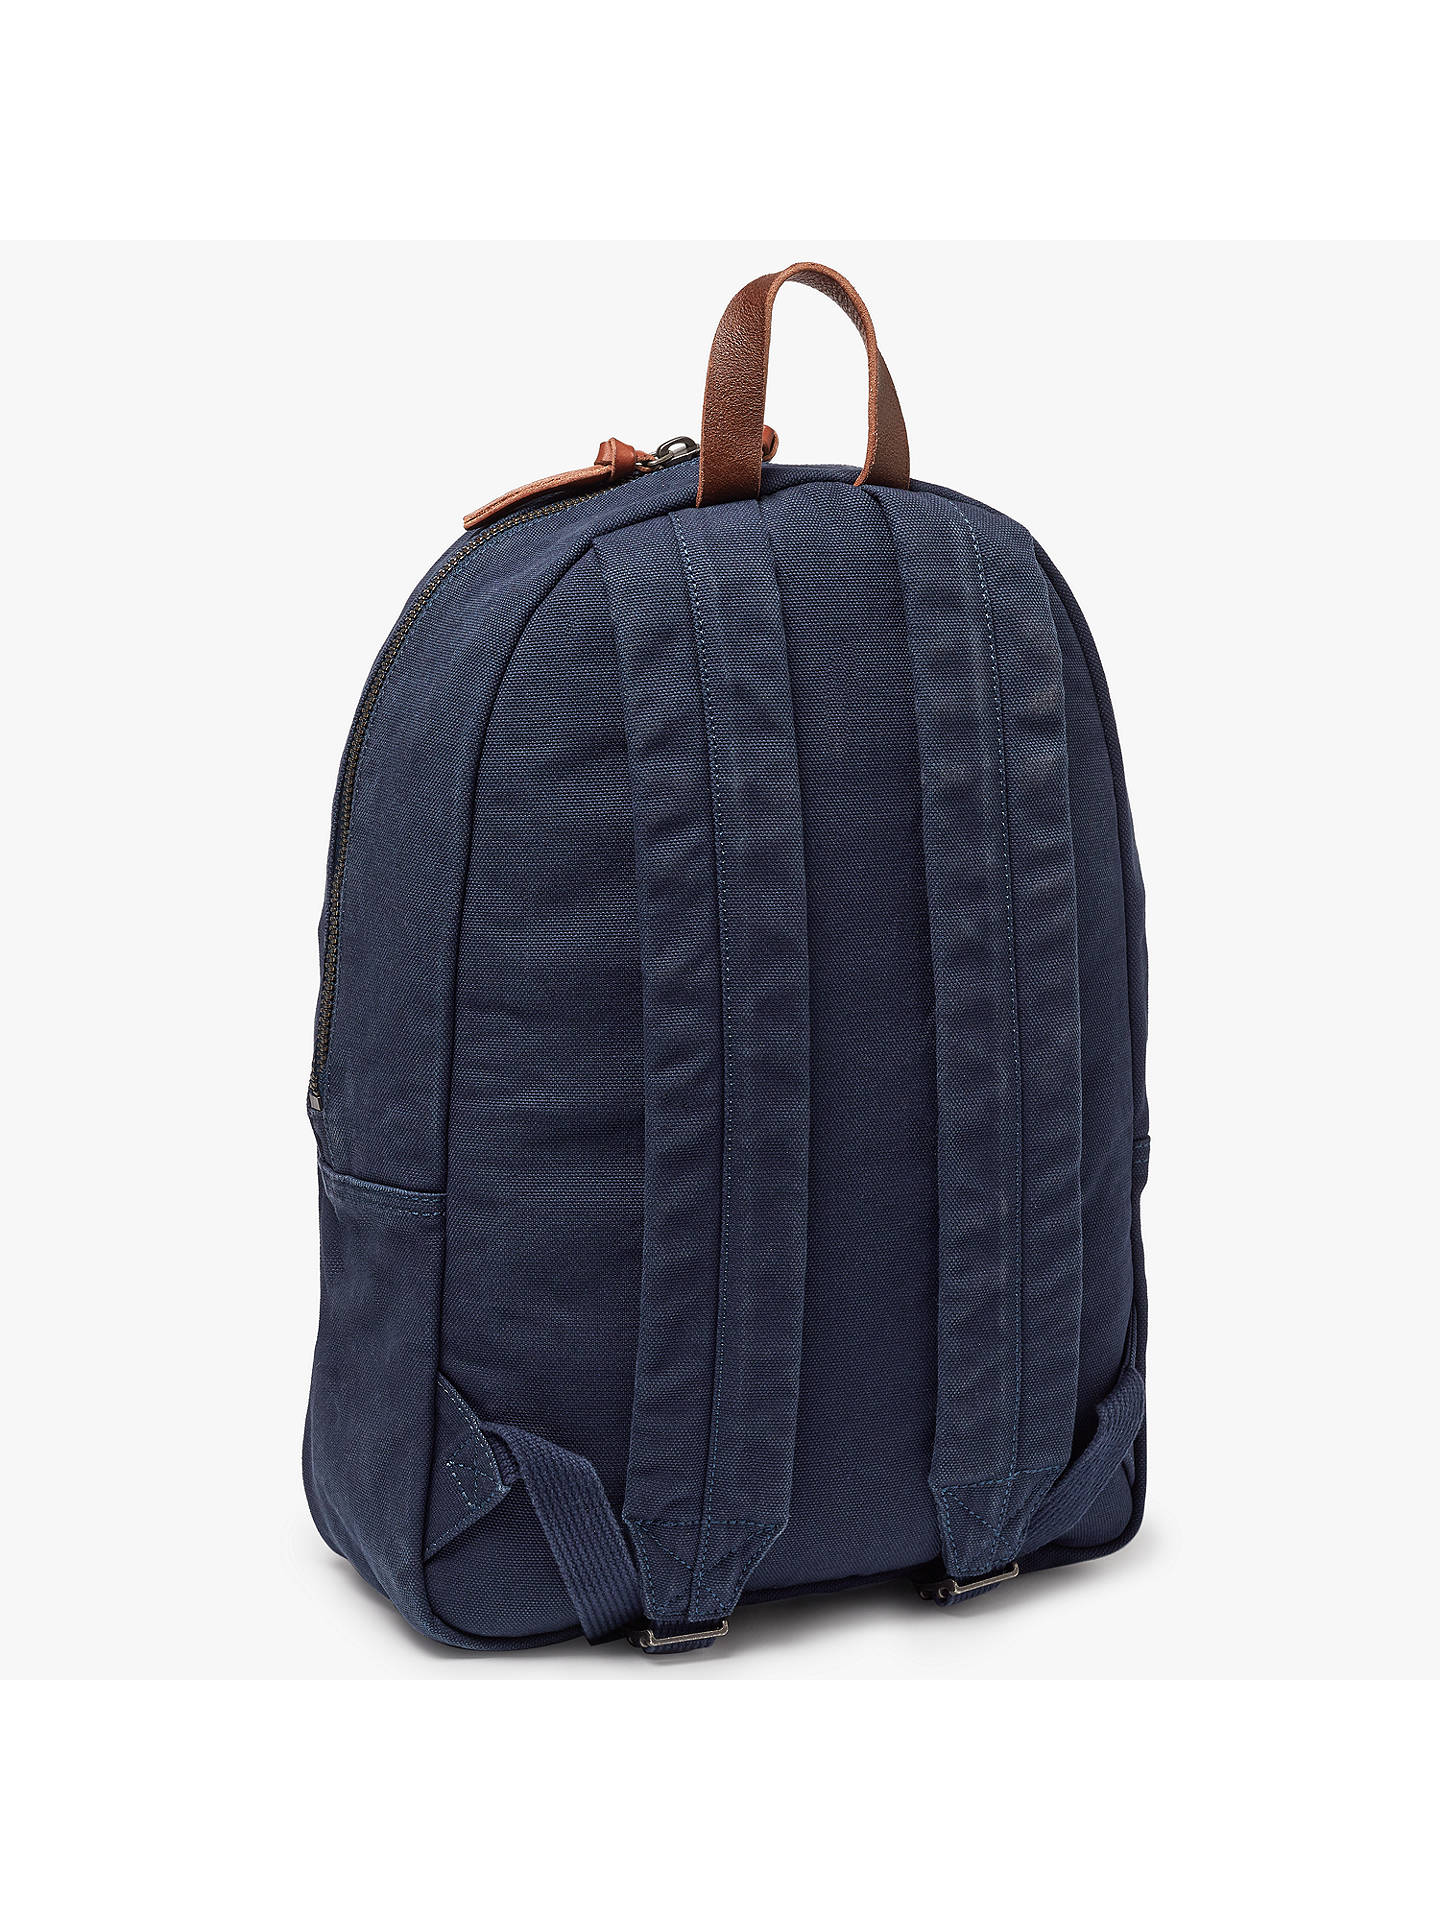 a588b01a98684 ... Buy Polo Ralph Lauren Canvas Big Pony Backpack